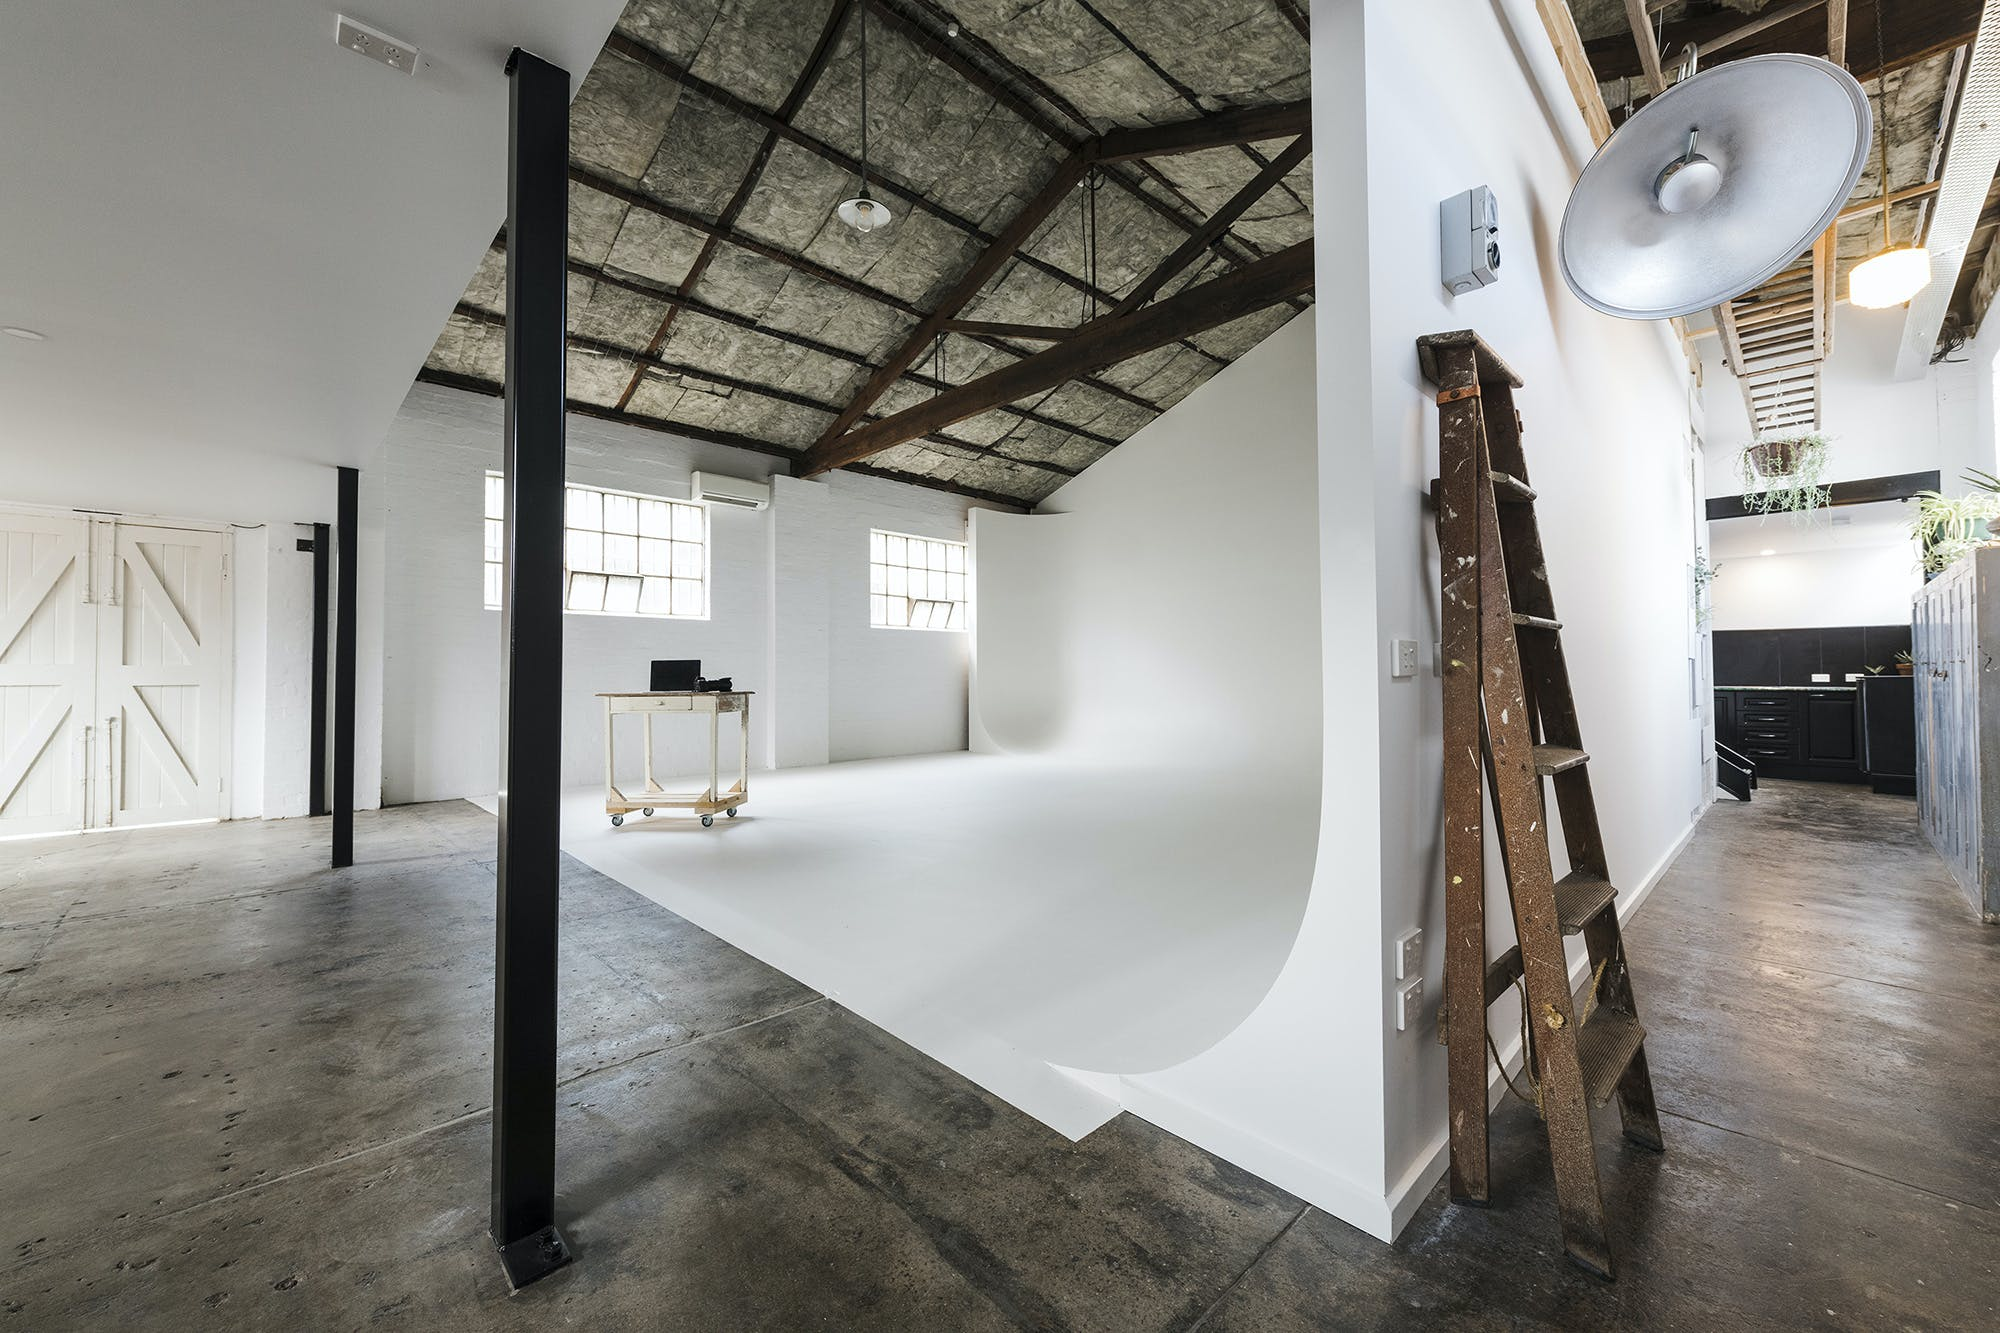 Studio Burrito, creative studio at Tamale Studios, image 1